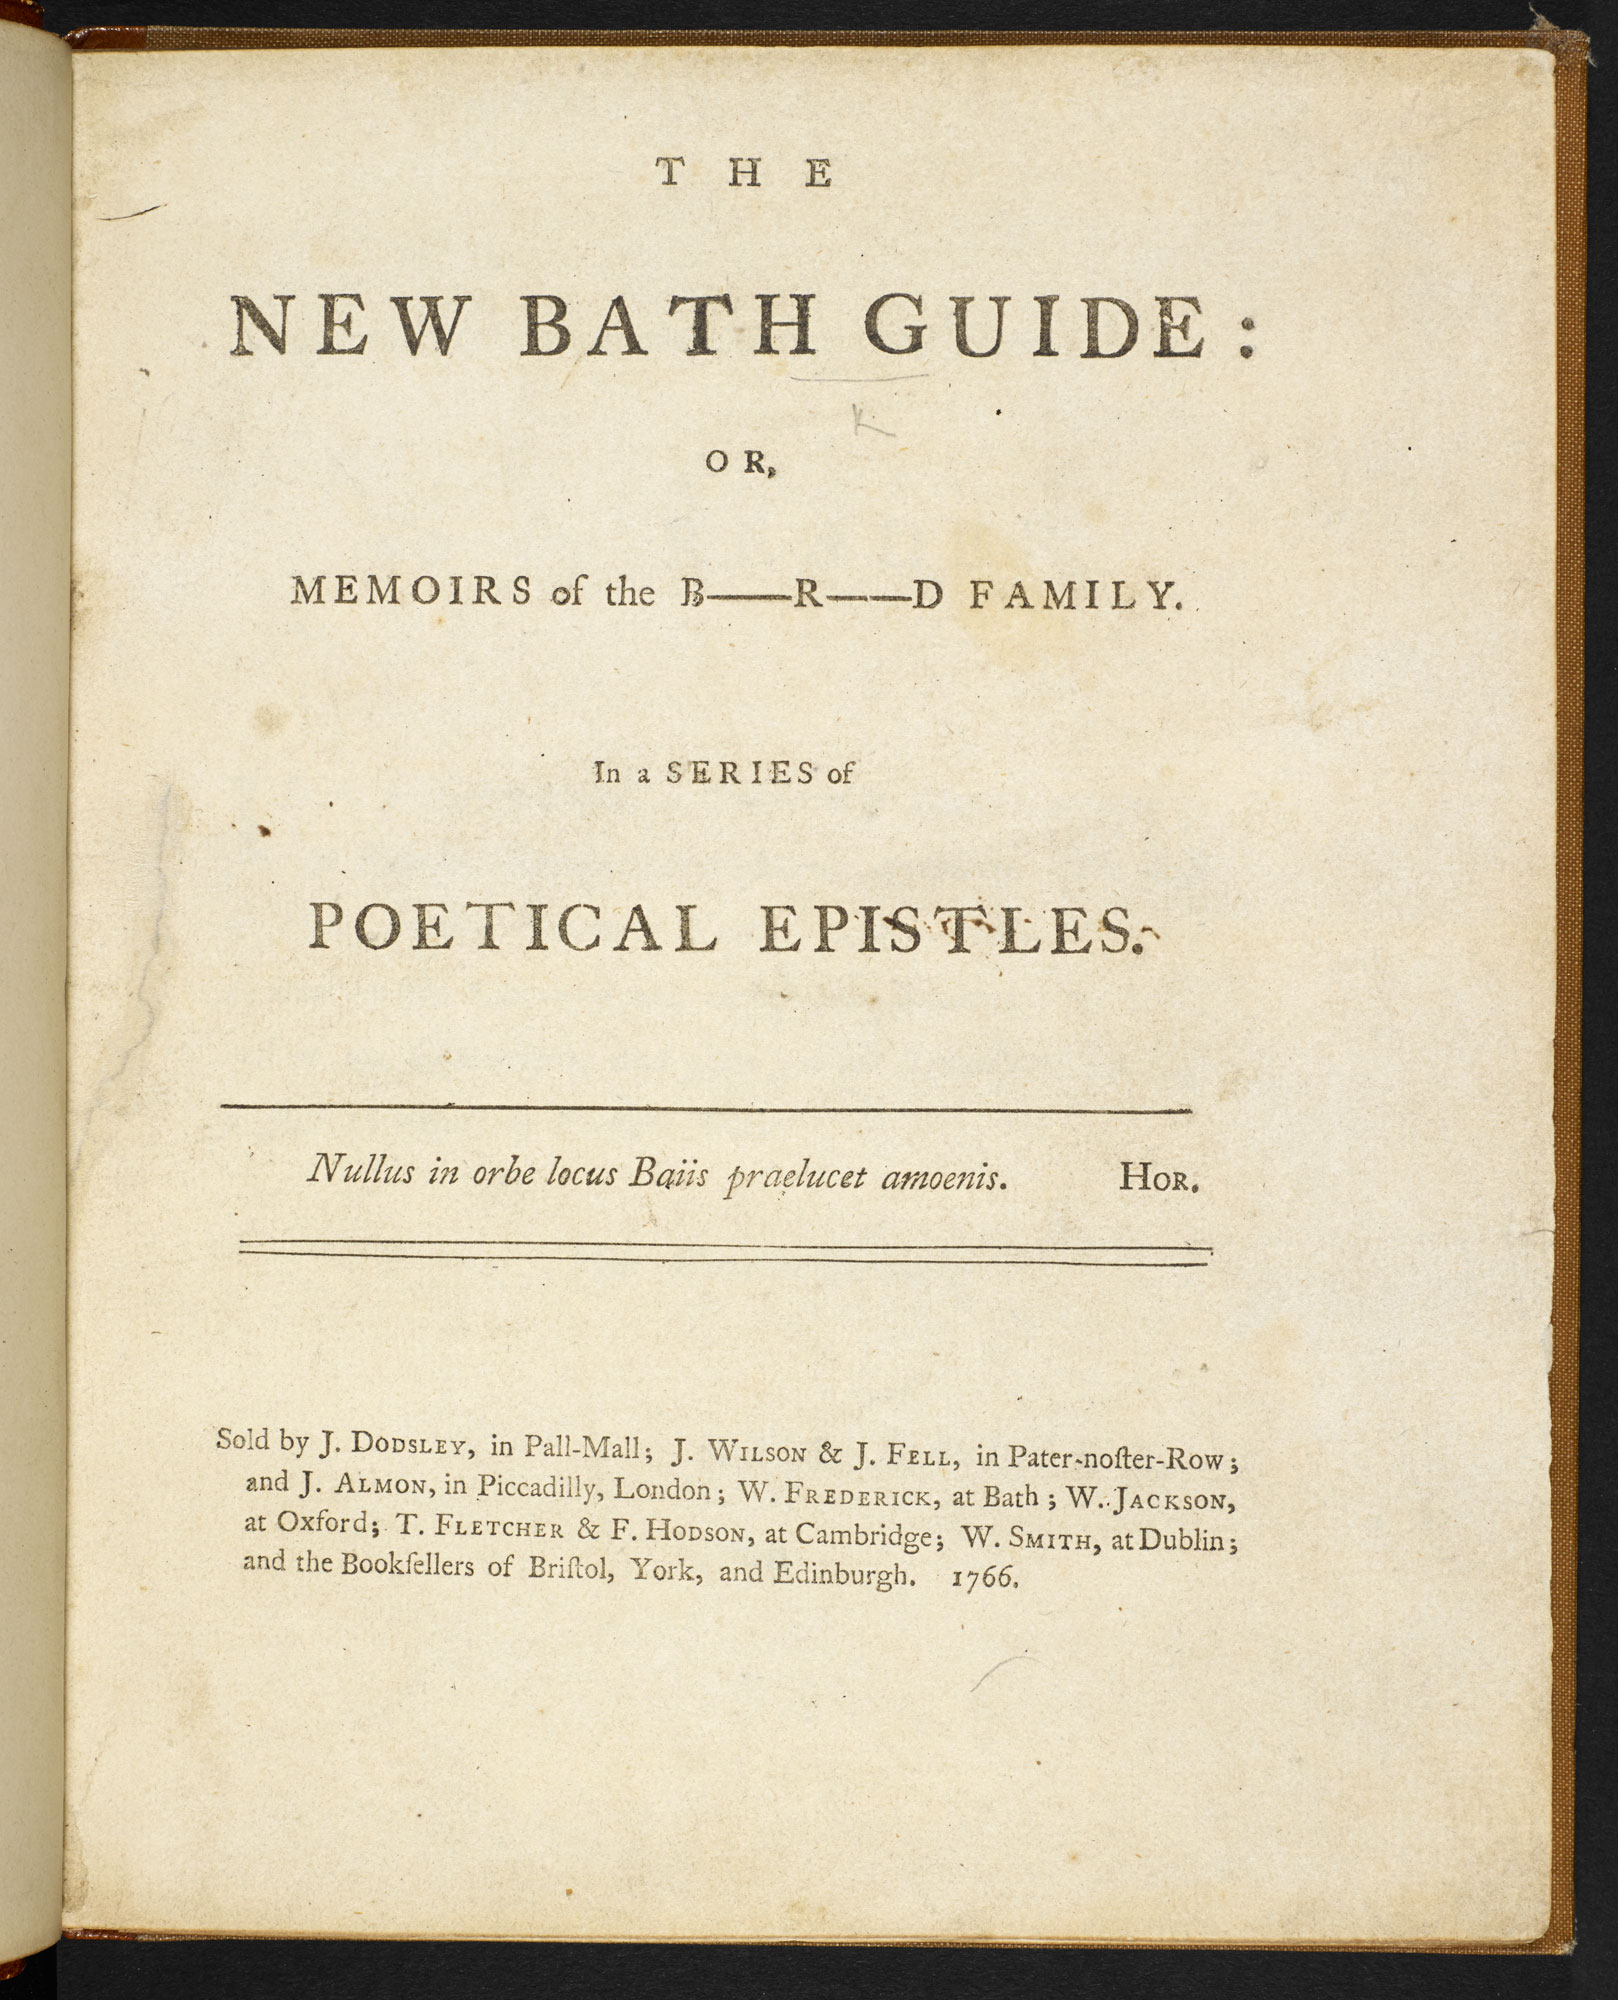 Satire of Bath society [page: title page]